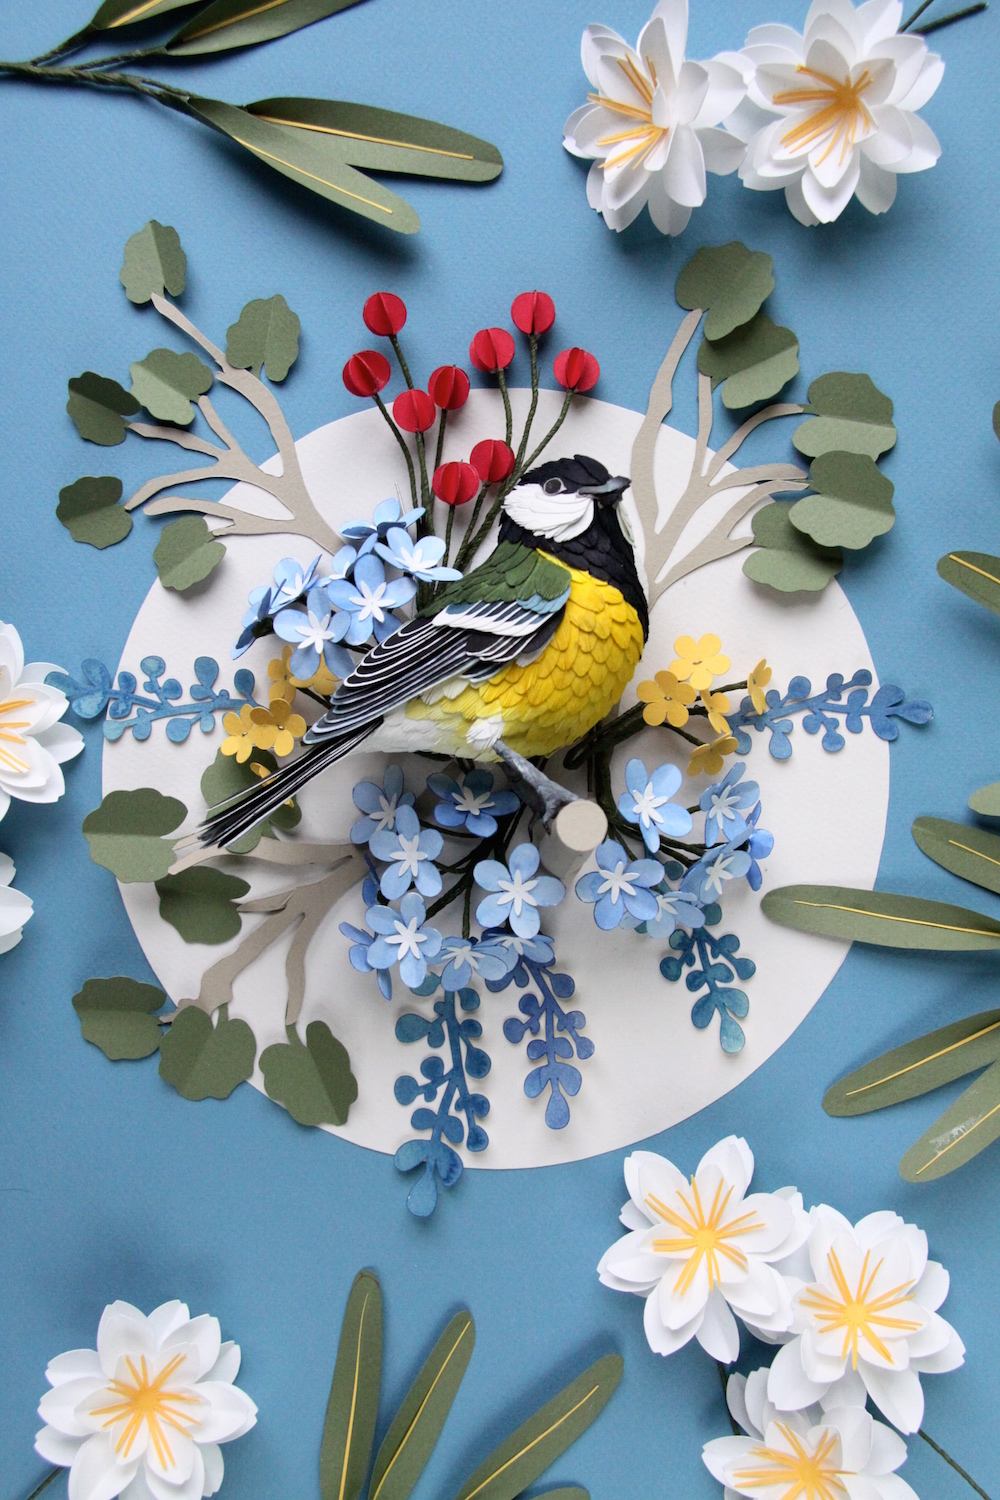 New Paper Bird Sculptures Juxtaposed With International Stamps by Diana Beltran Herrera